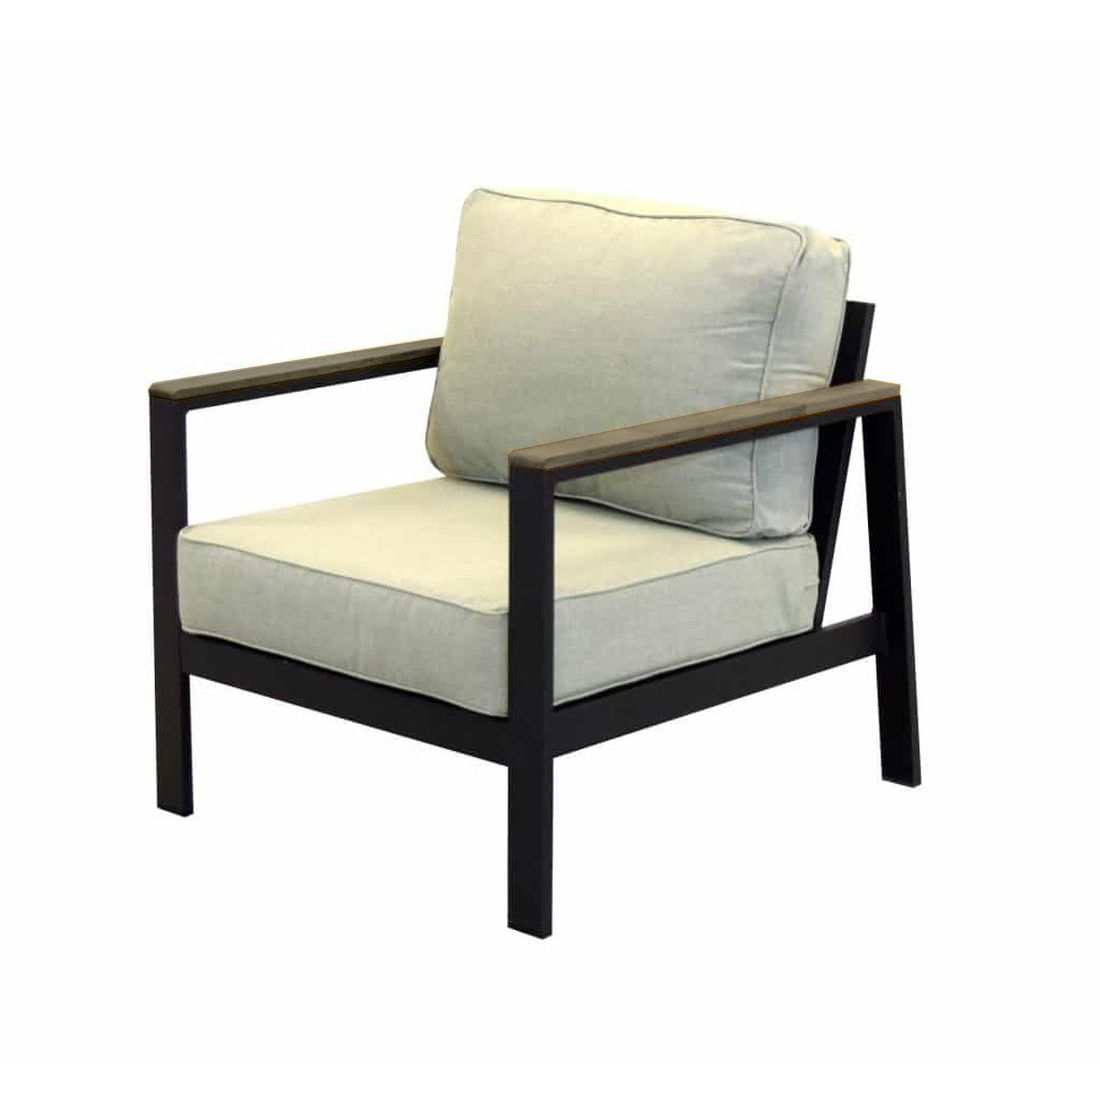 Forever Patio Hanover Club Chair - Gray/Canvas Granite